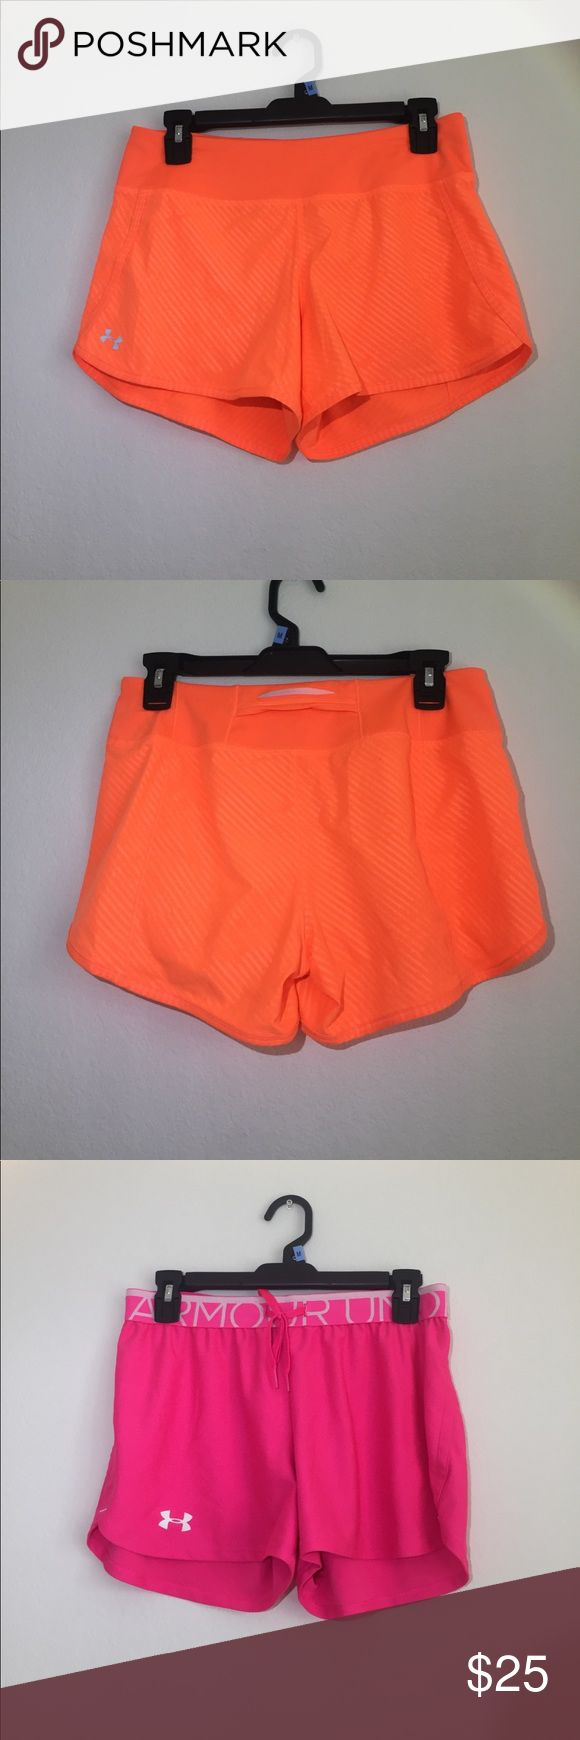 Neon athletic shorts 3 pairs of athletic shorts- two Under Armour and one Champion. Orange UA has mesh underwear attached underneath and a pocket in the waistband. Pink UA has a drawstring waistband and is loose fitting. Pink Champion had white paneling and orange trim, also with underwear attached underneath. Pocket inside. Originally around $40 each. Selling all three for $25. Shorts